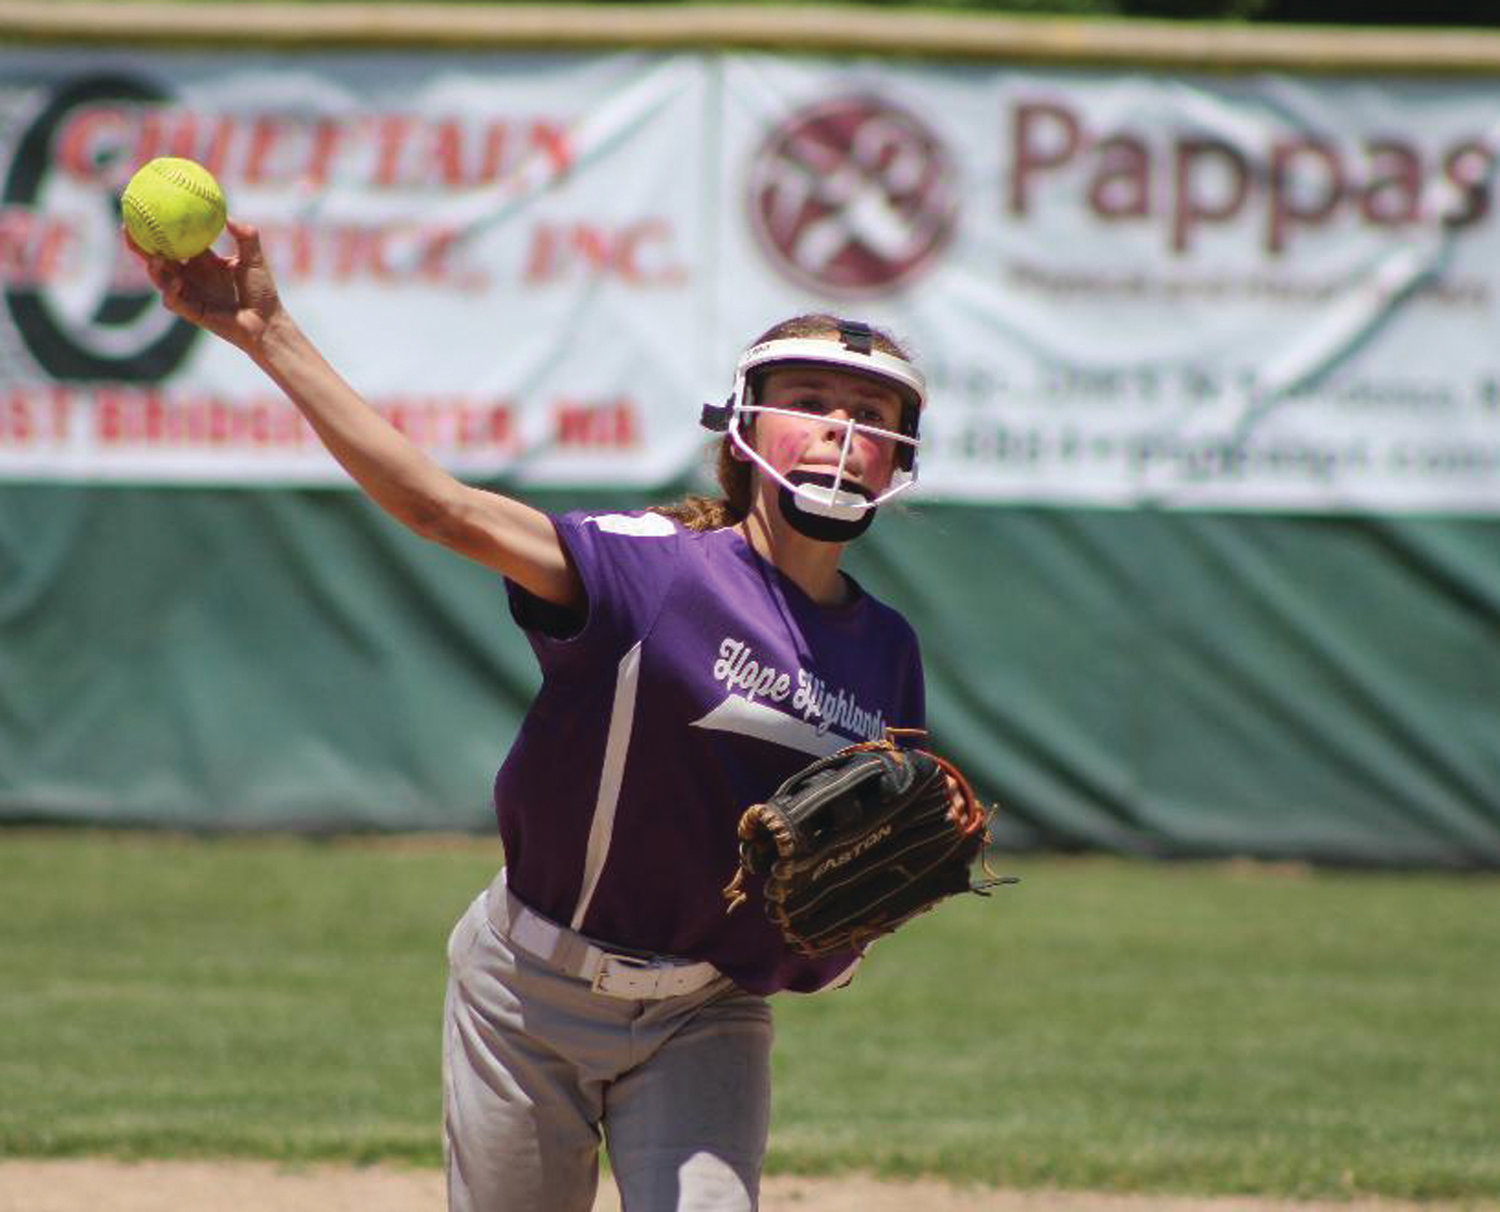 PLAYING THE FIELD: Hope Highlands' Siena Nardelli.